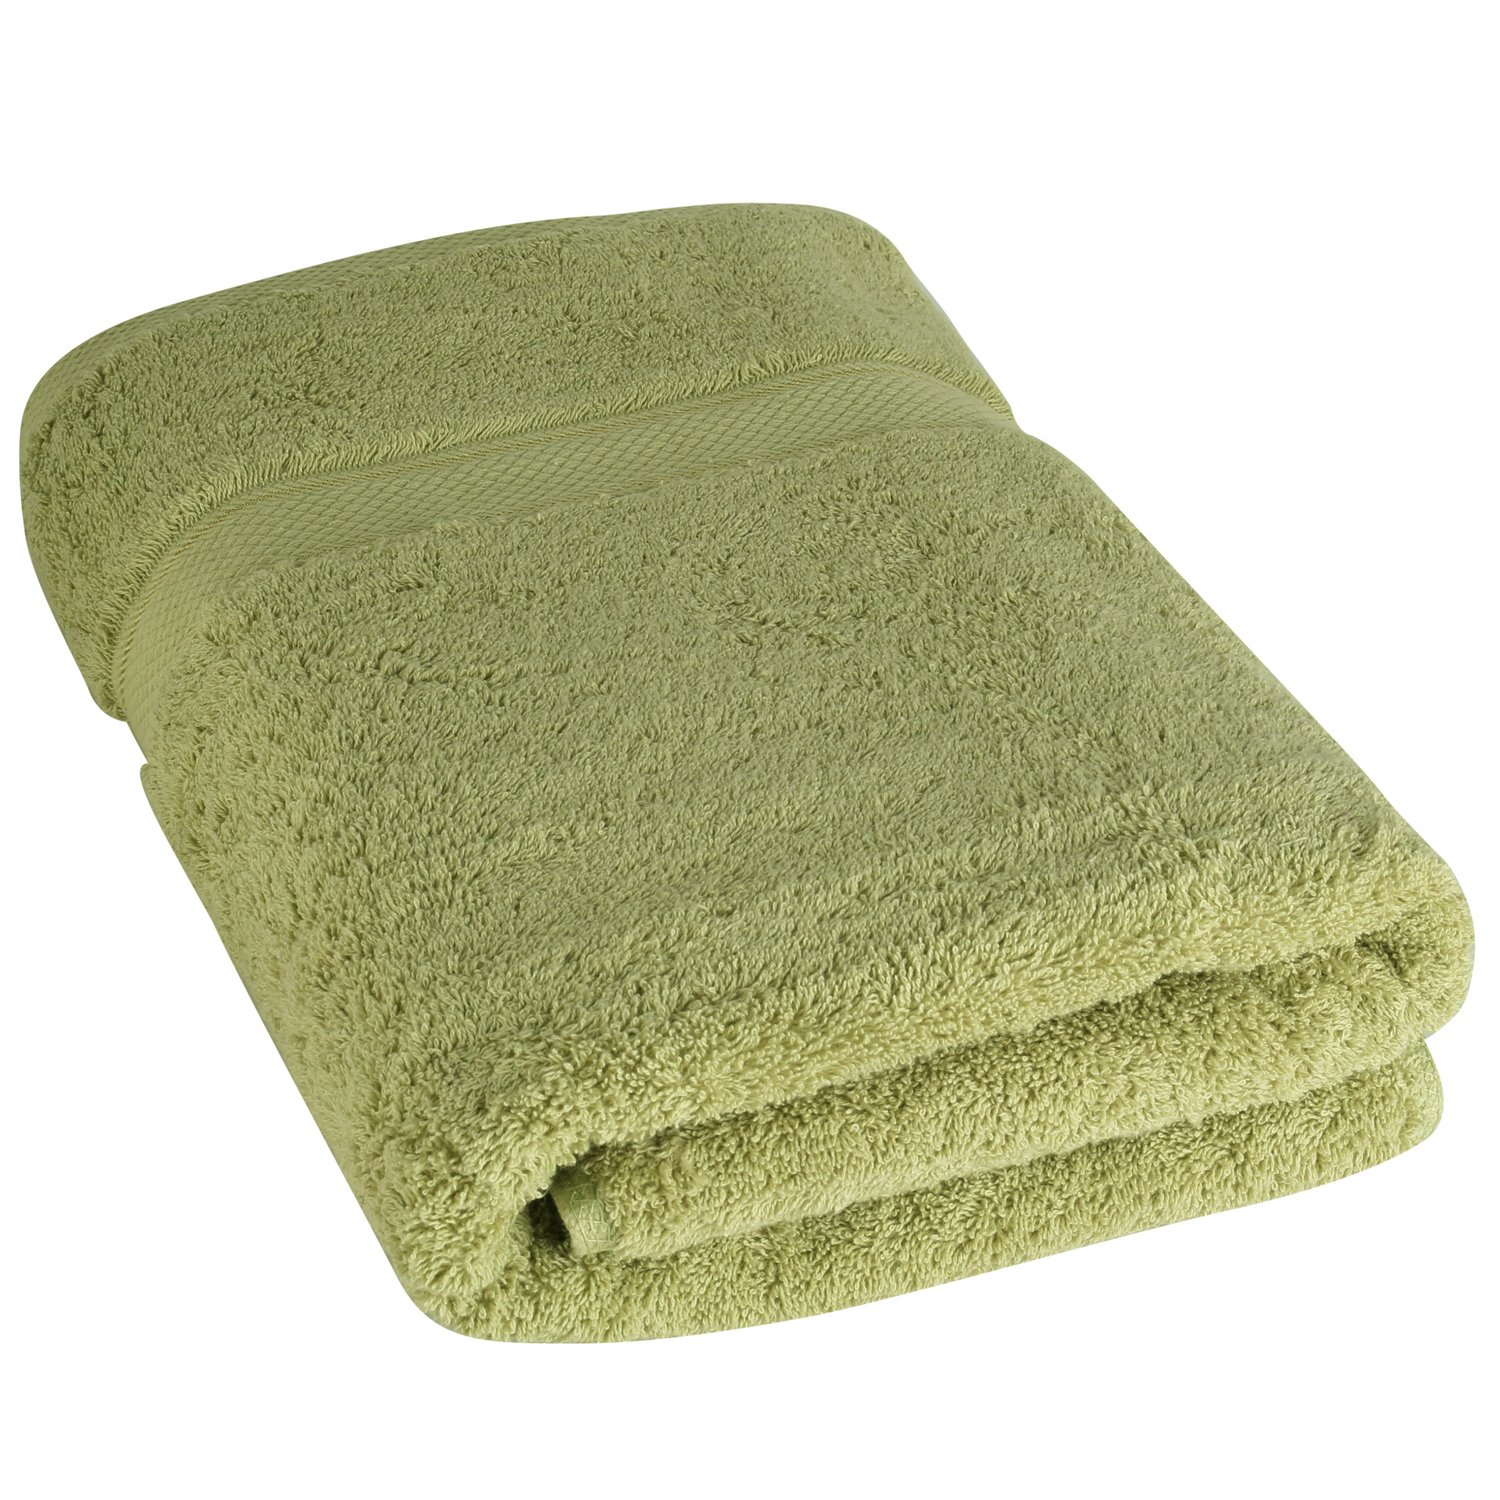 Luxury Bath Towels By Cozy Homery - Green - 100% Organic Natural Egyptian Cotton 650 GSM - Multipurpose Use for Bathroom, pool, Gym and Spa